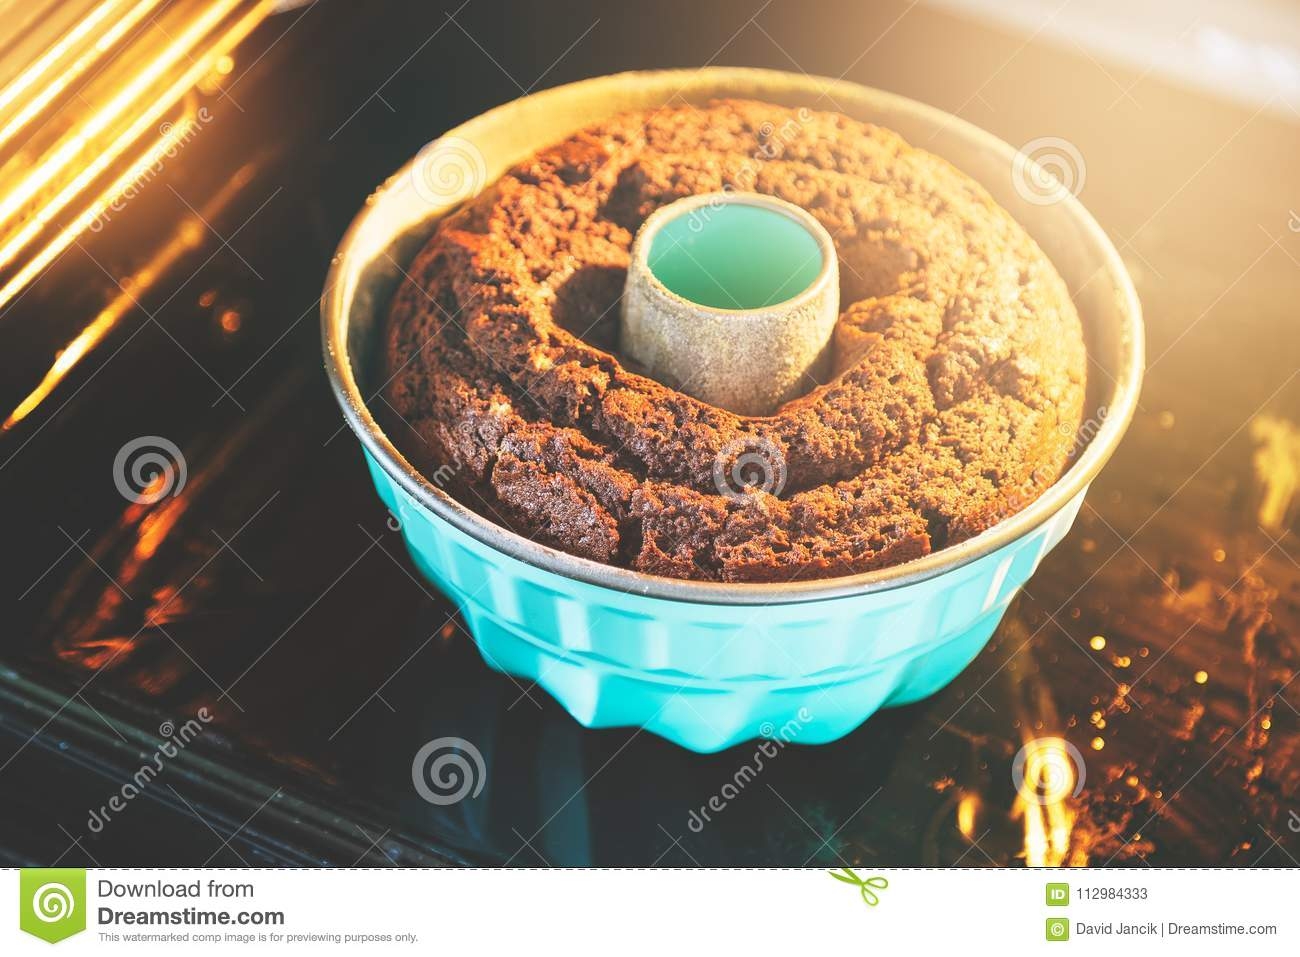 Baking the bundt cake in the oven